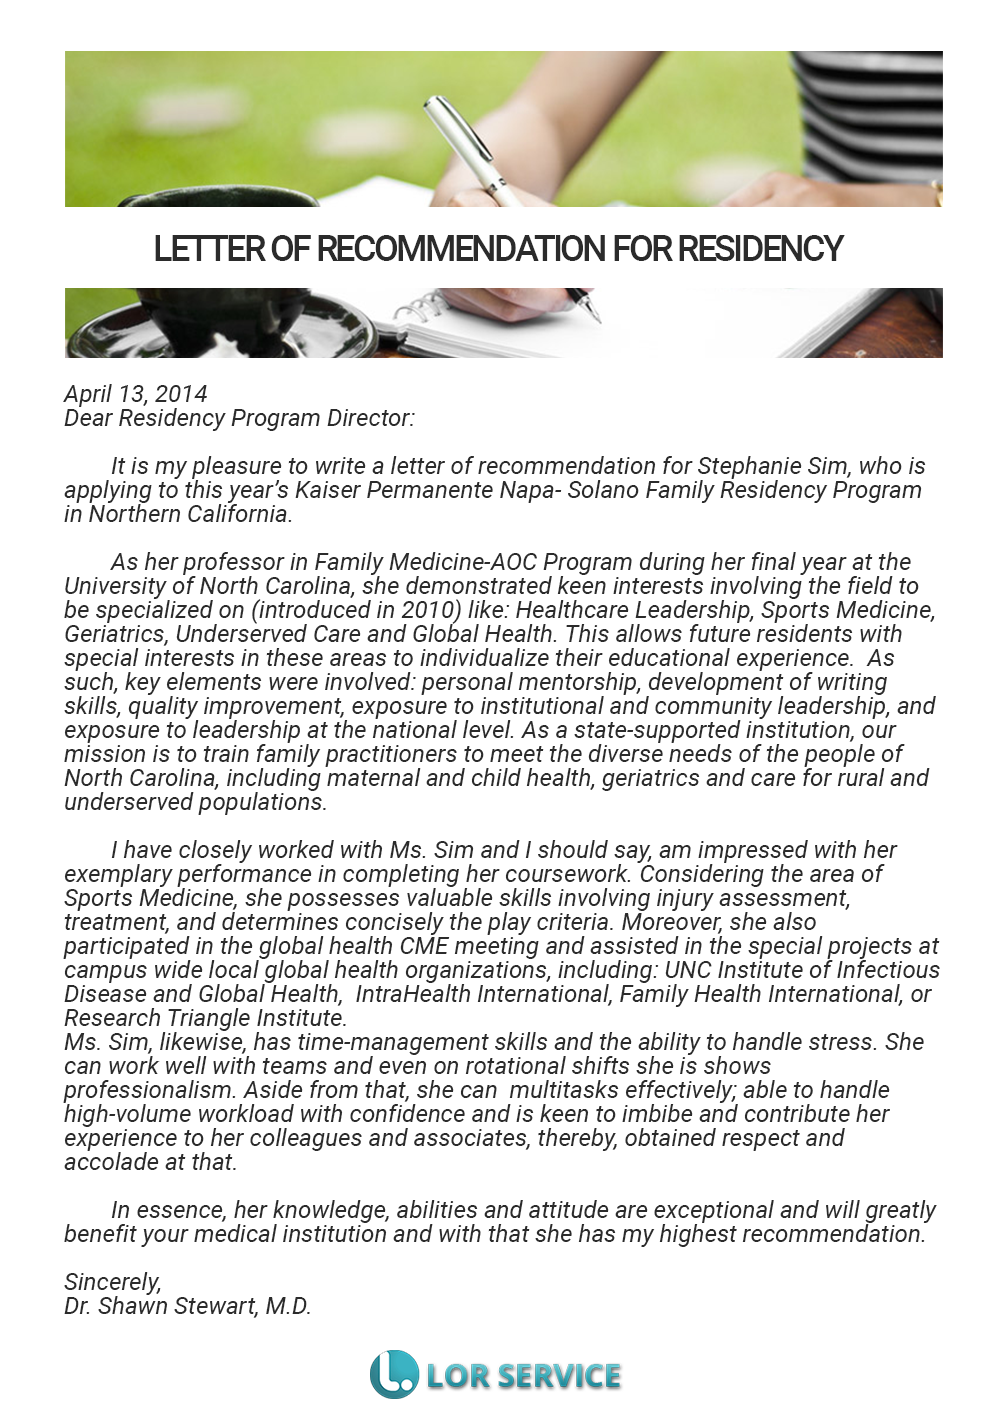 Letter Of Recommendation Residency Template  EczaSolinfCo